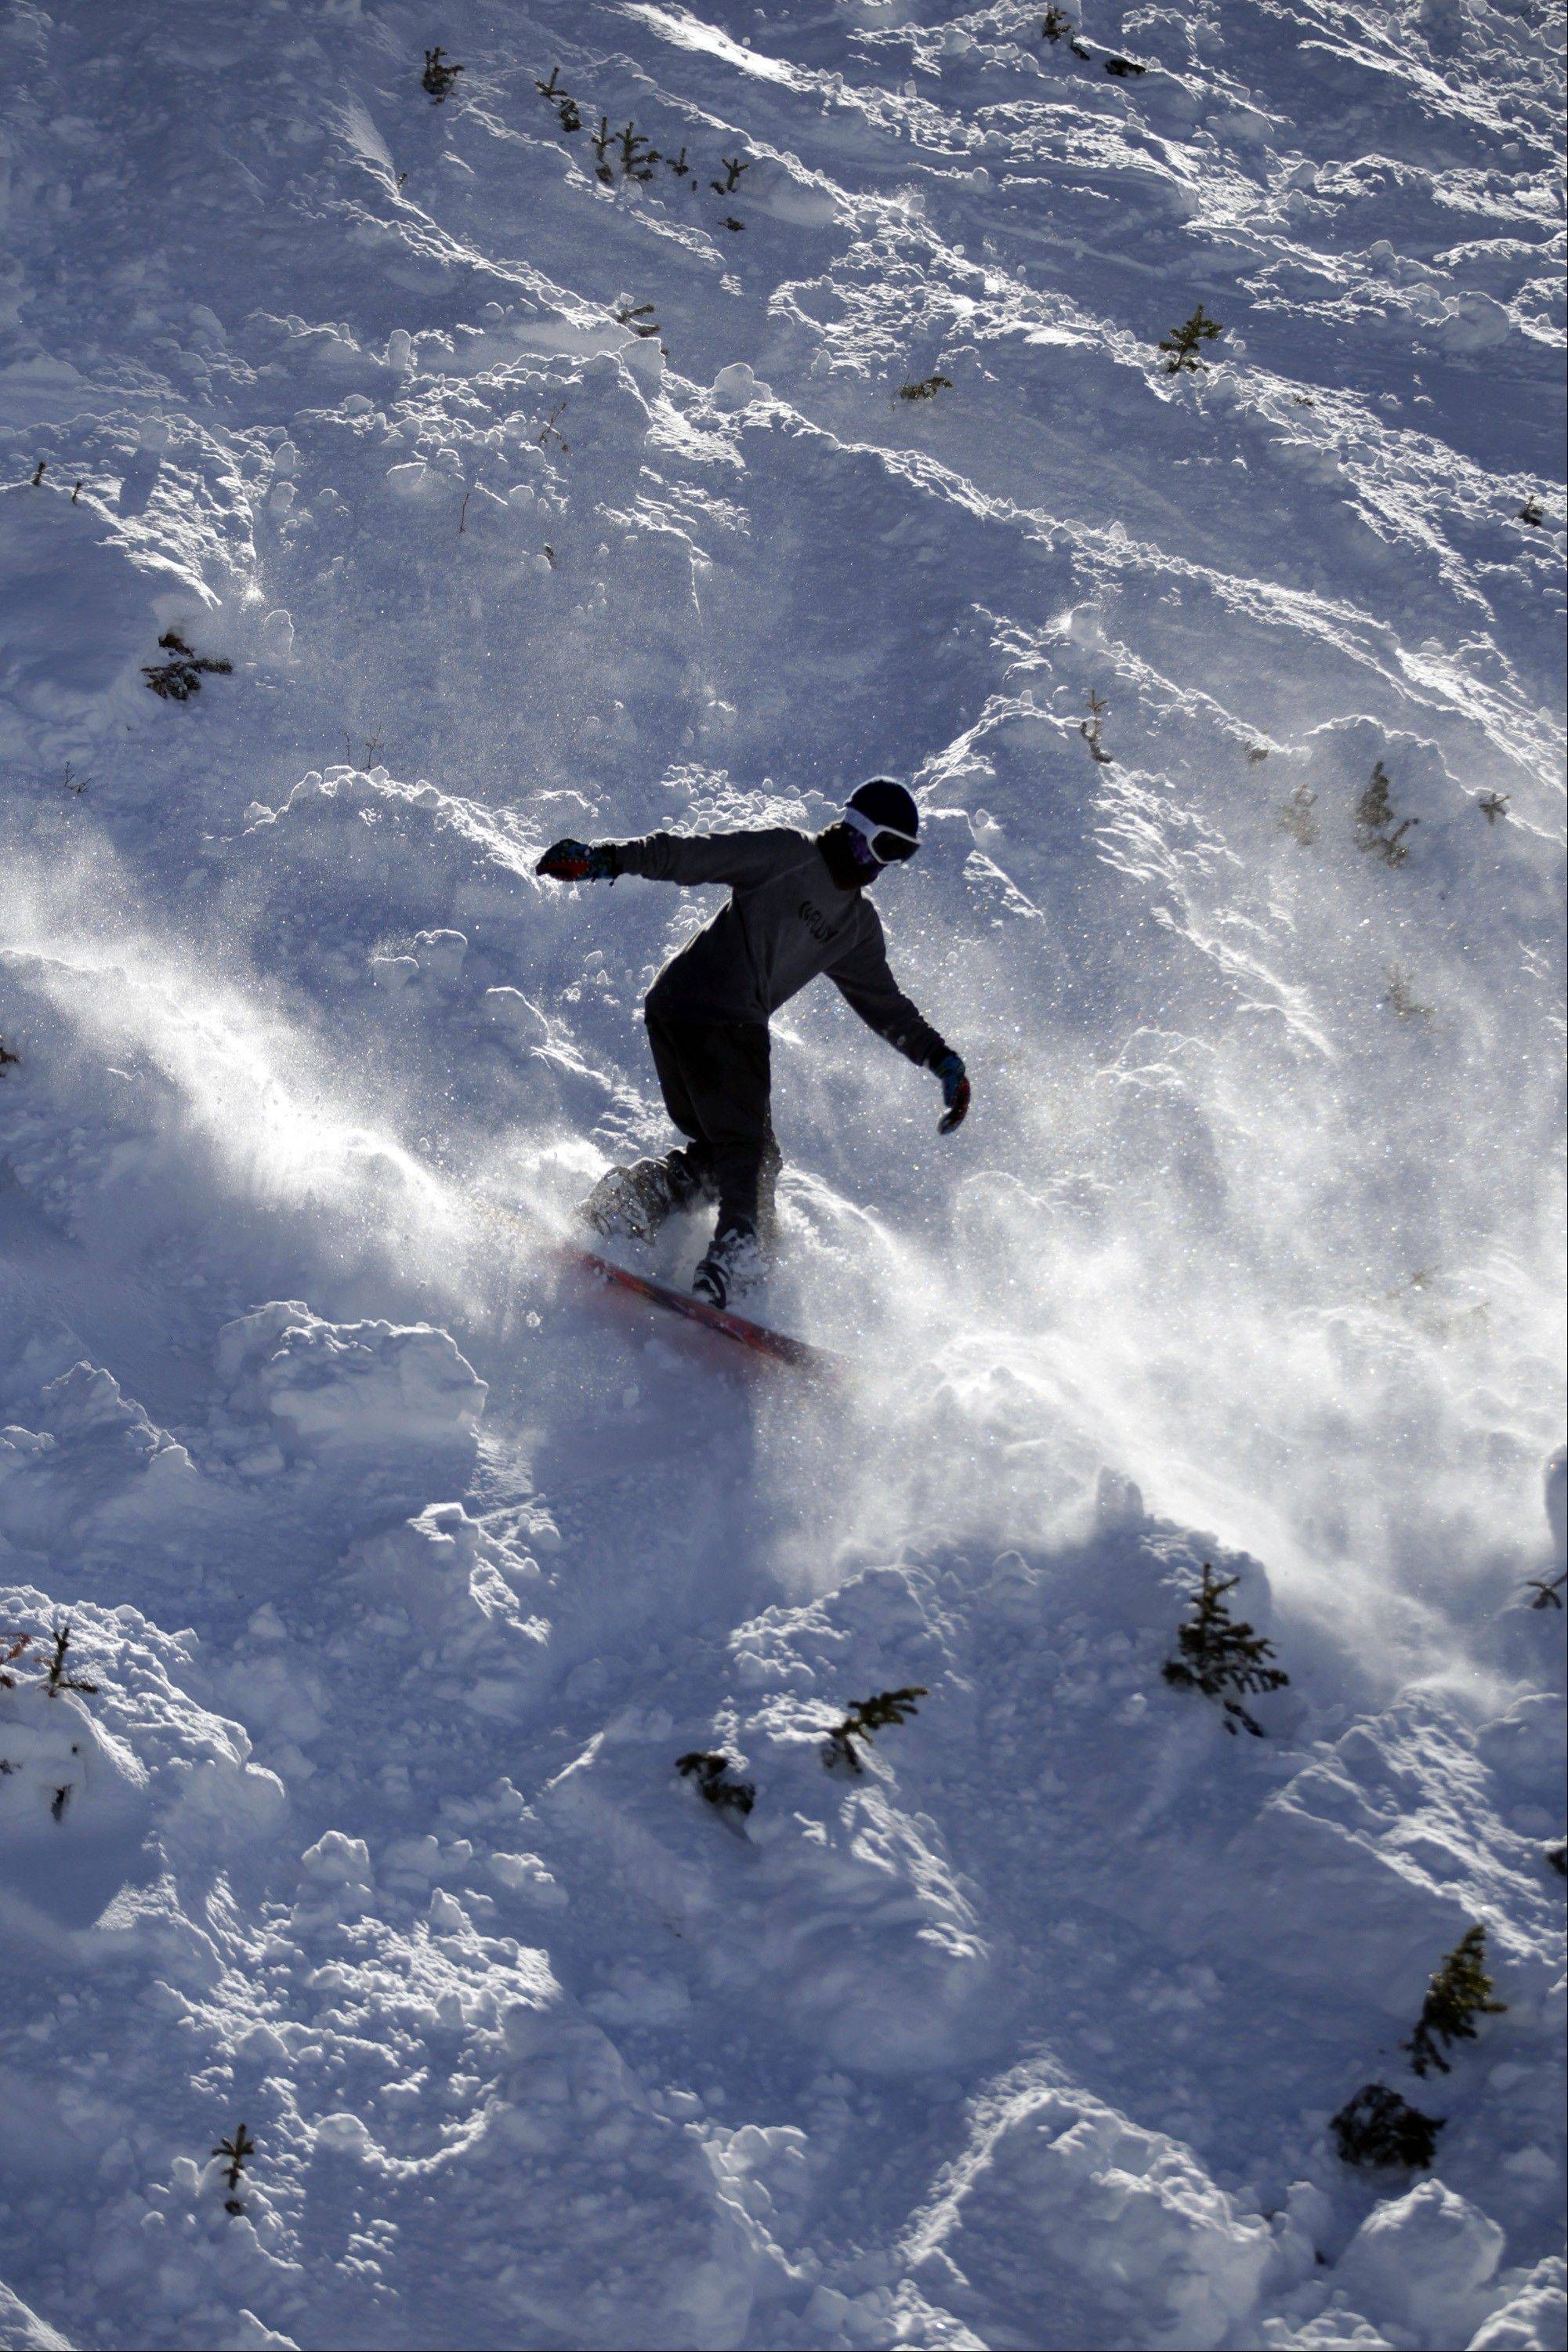 Utah looking to link Wasatch ski resorts